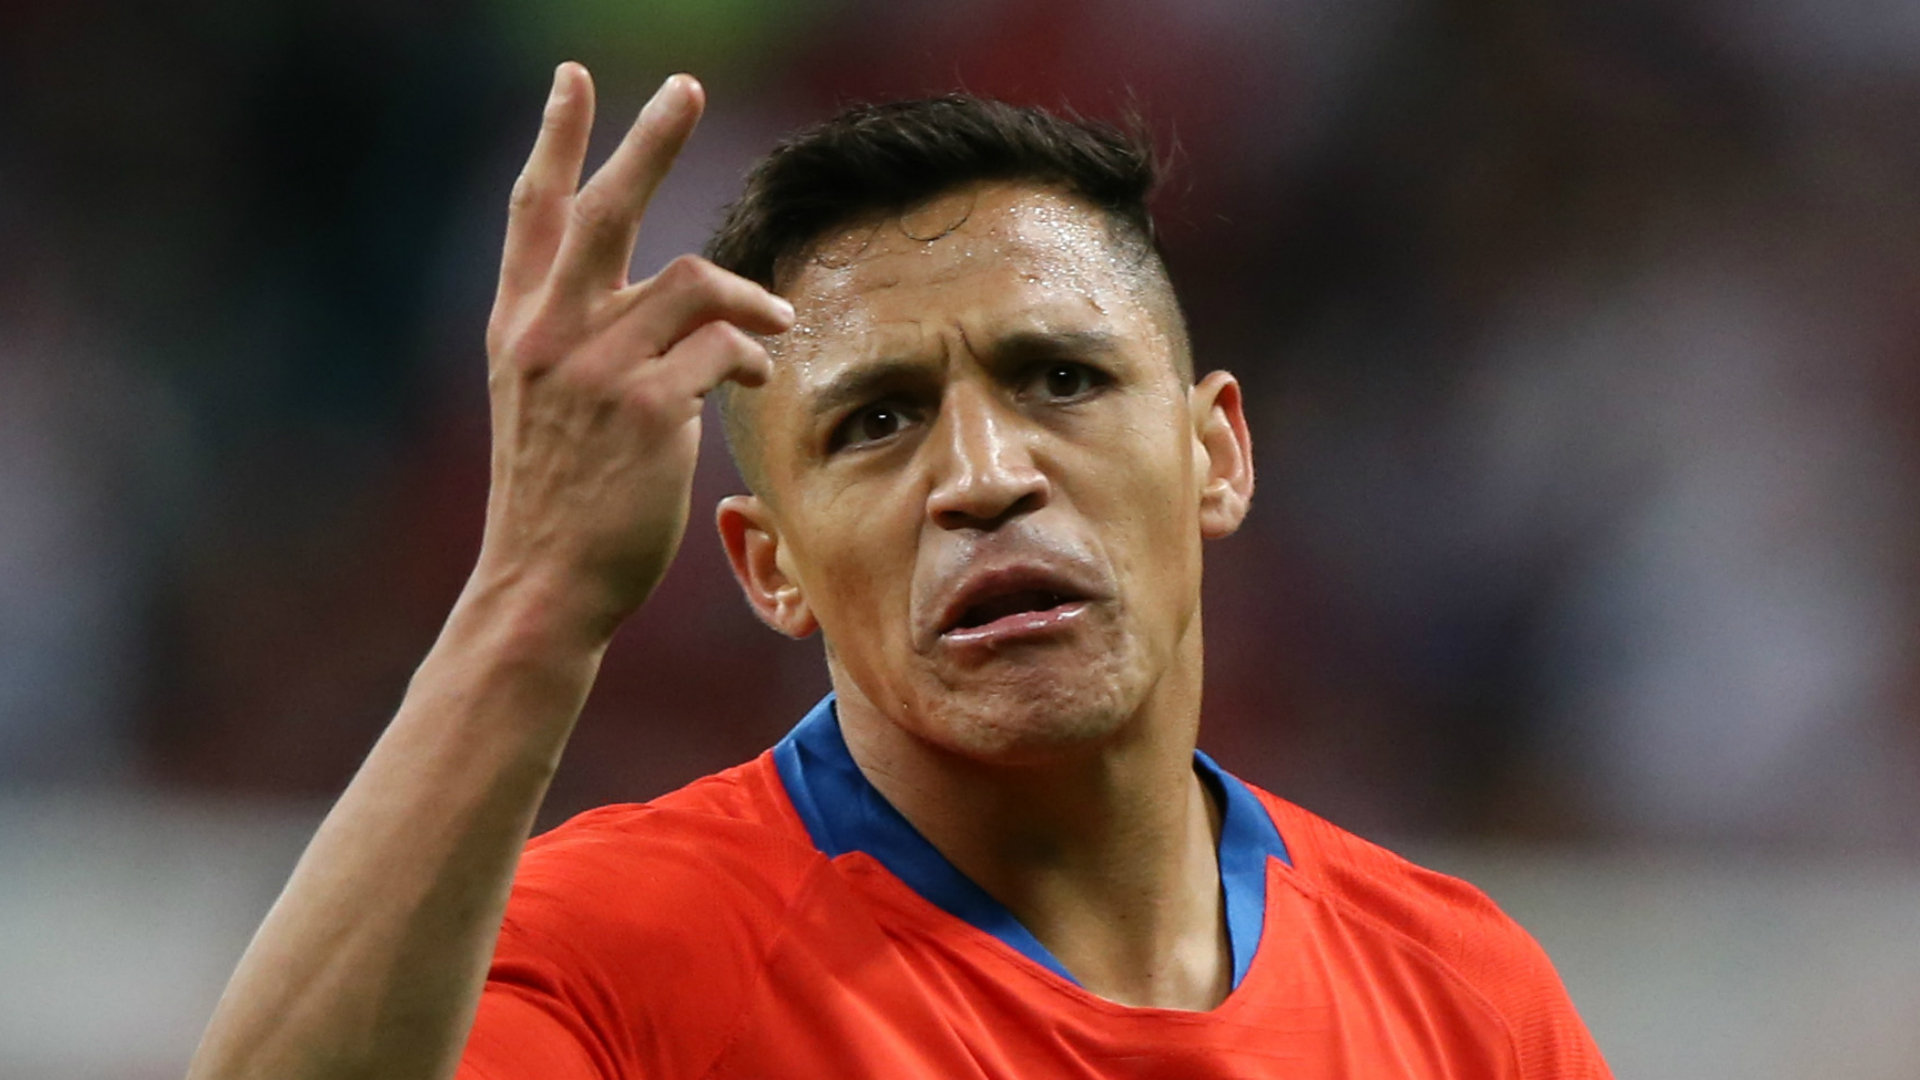 Sanchez could be out for two to three months, says Chile coach